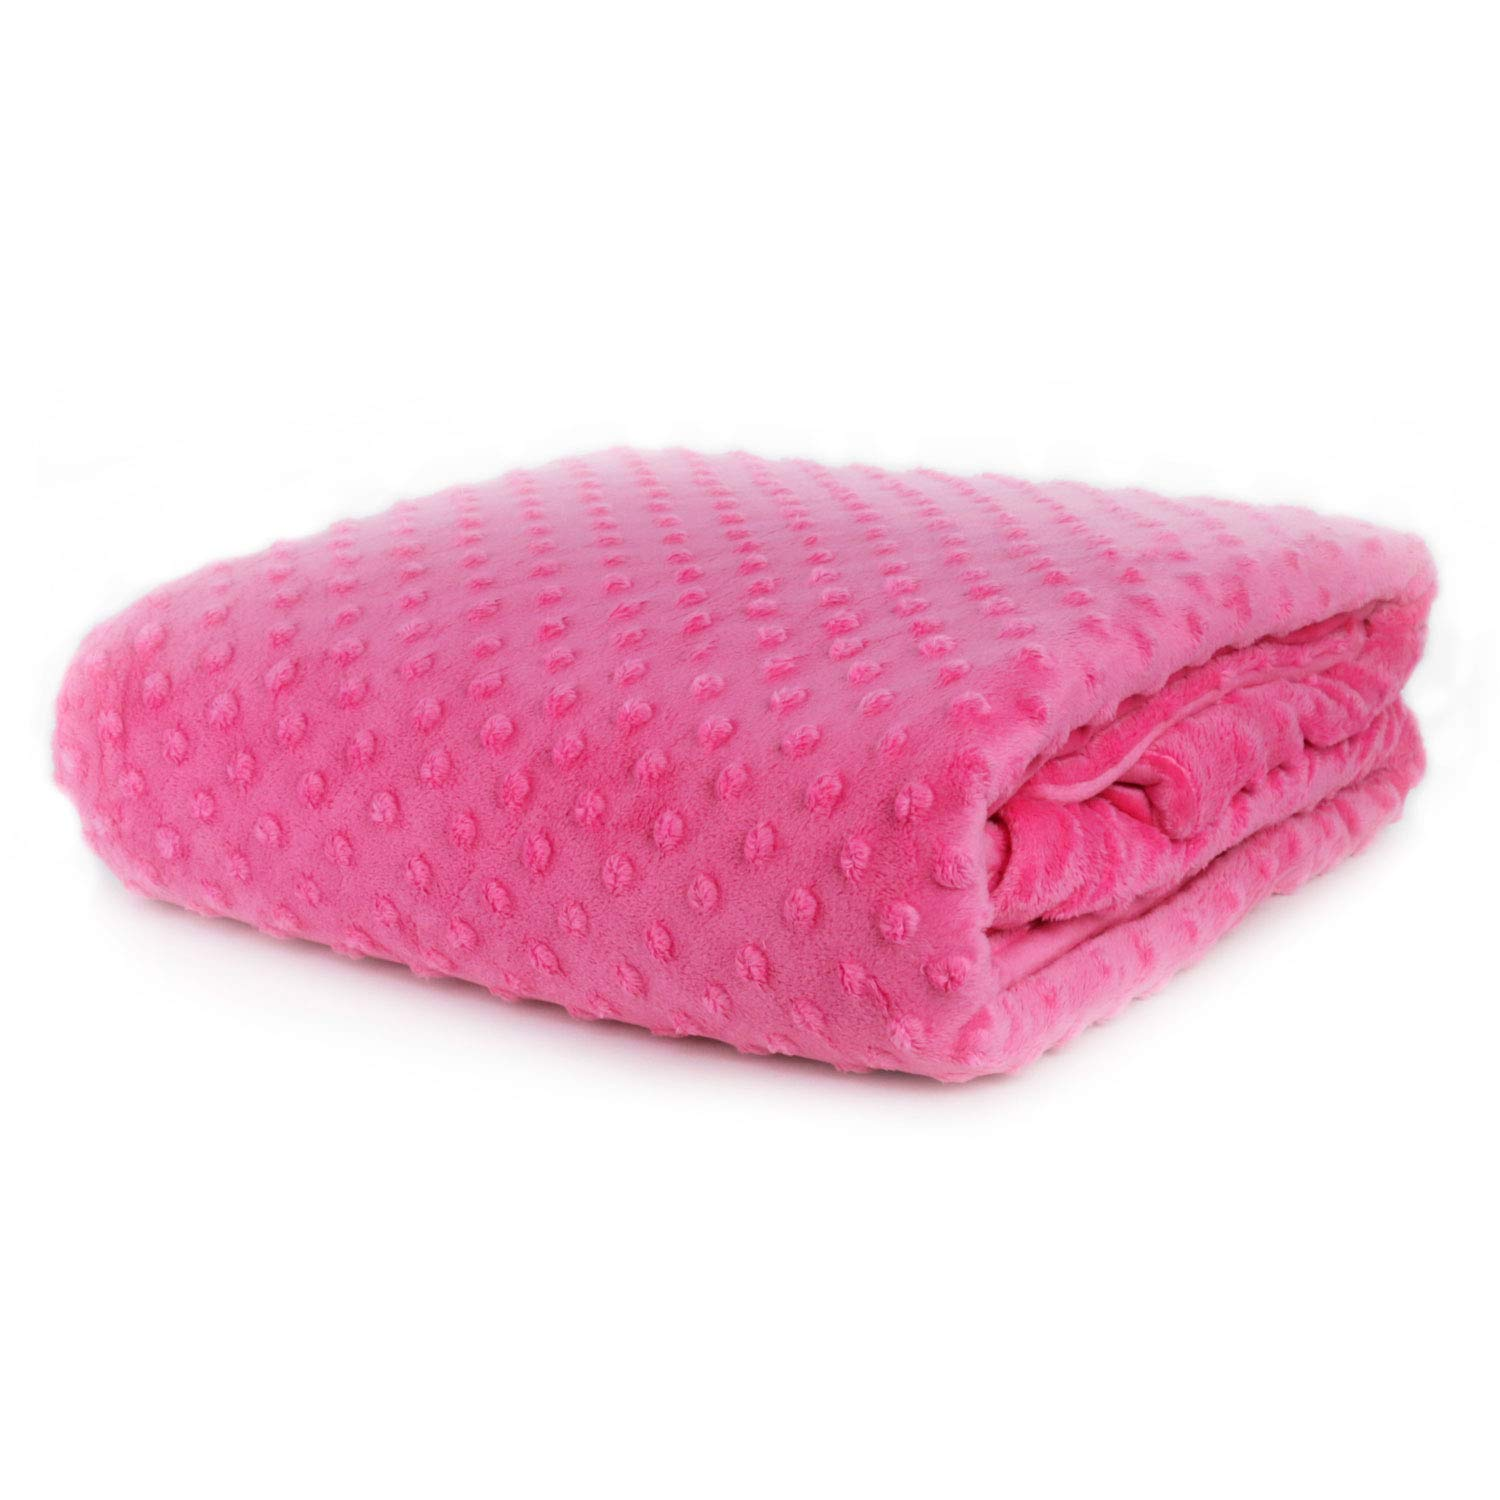 Huggaroo Weighted Blanket for Children (7 lbs, 48 x 36 inches, Hot Pink) | Machine-Washable